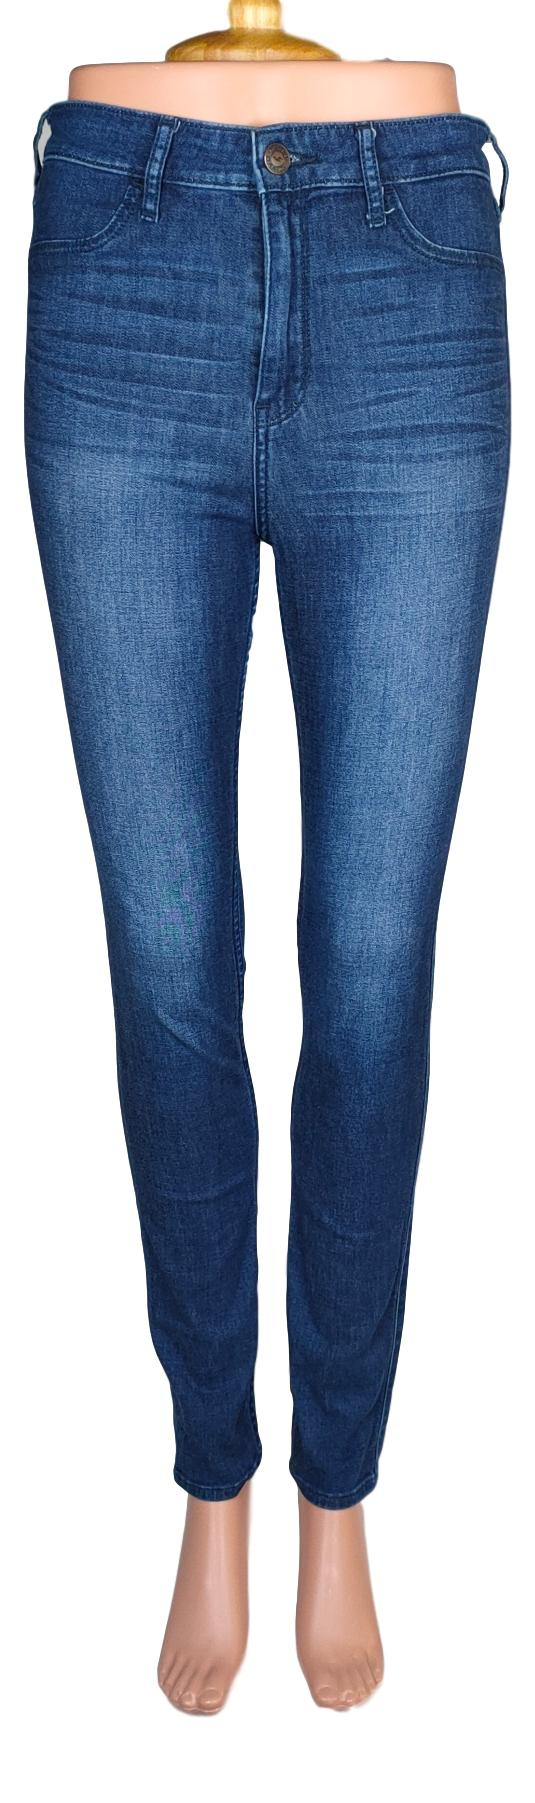 Hollister - Taille 36